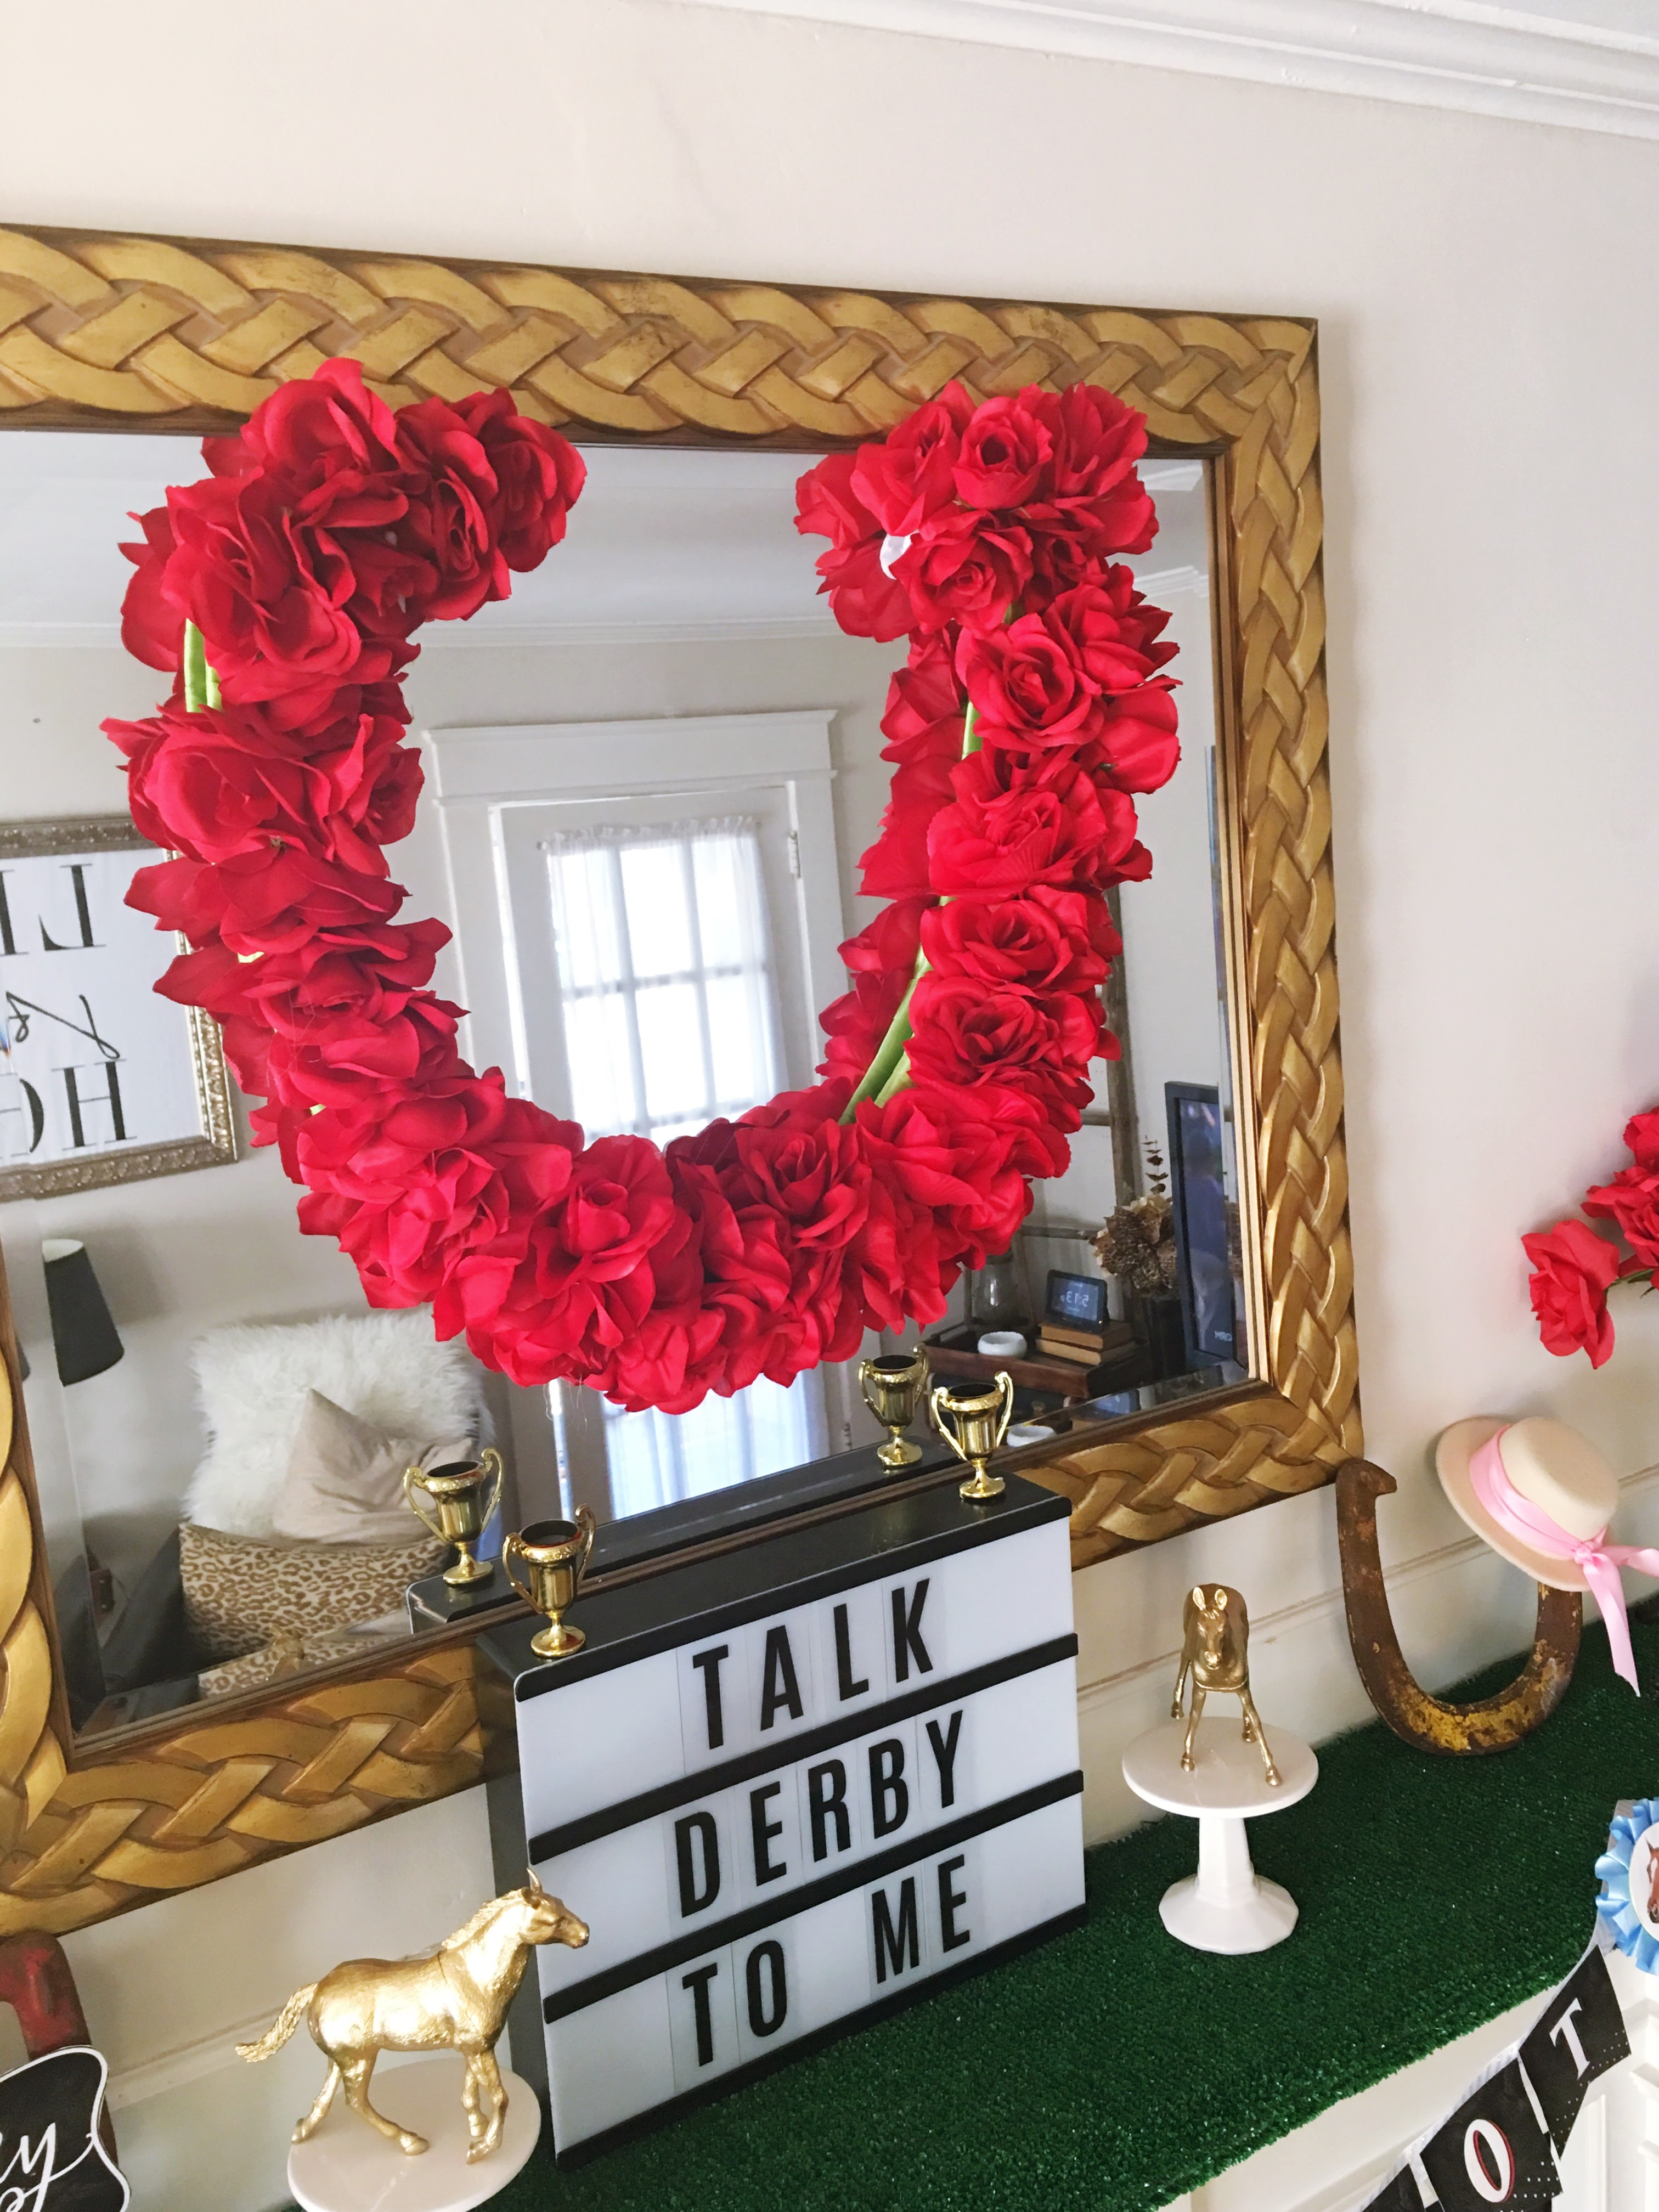 Horseshoe with roses ky derby bow tie clipart banner library stock Styling Harvard: Tips for Hosting a Kentucky Derby Party ... banner library stock